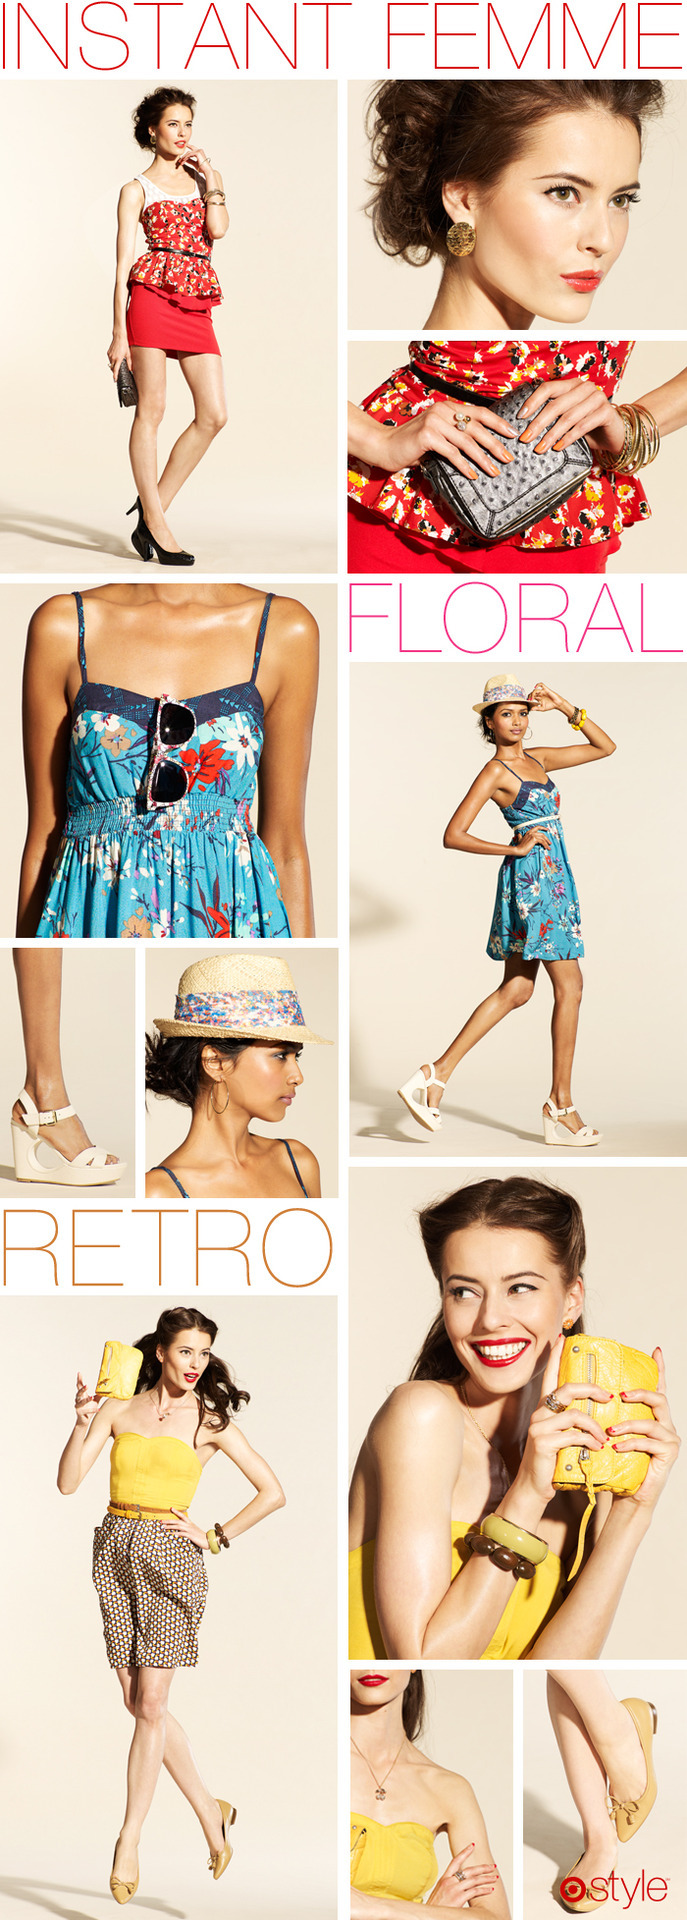 Trend Report Our favorite trends this month: Instant Femme, Floral, and Retro. own it now: peplum skirt. white tank. floral dress. floral sunglasses.  fedora. yellow clutch.  bustier top. ostrich clutch. black pumps. gold earrings. gold bangles. white wedges. bustier dress. skinny belt. yellow flats. yellow bangle. bead bracelet. (shop in store)